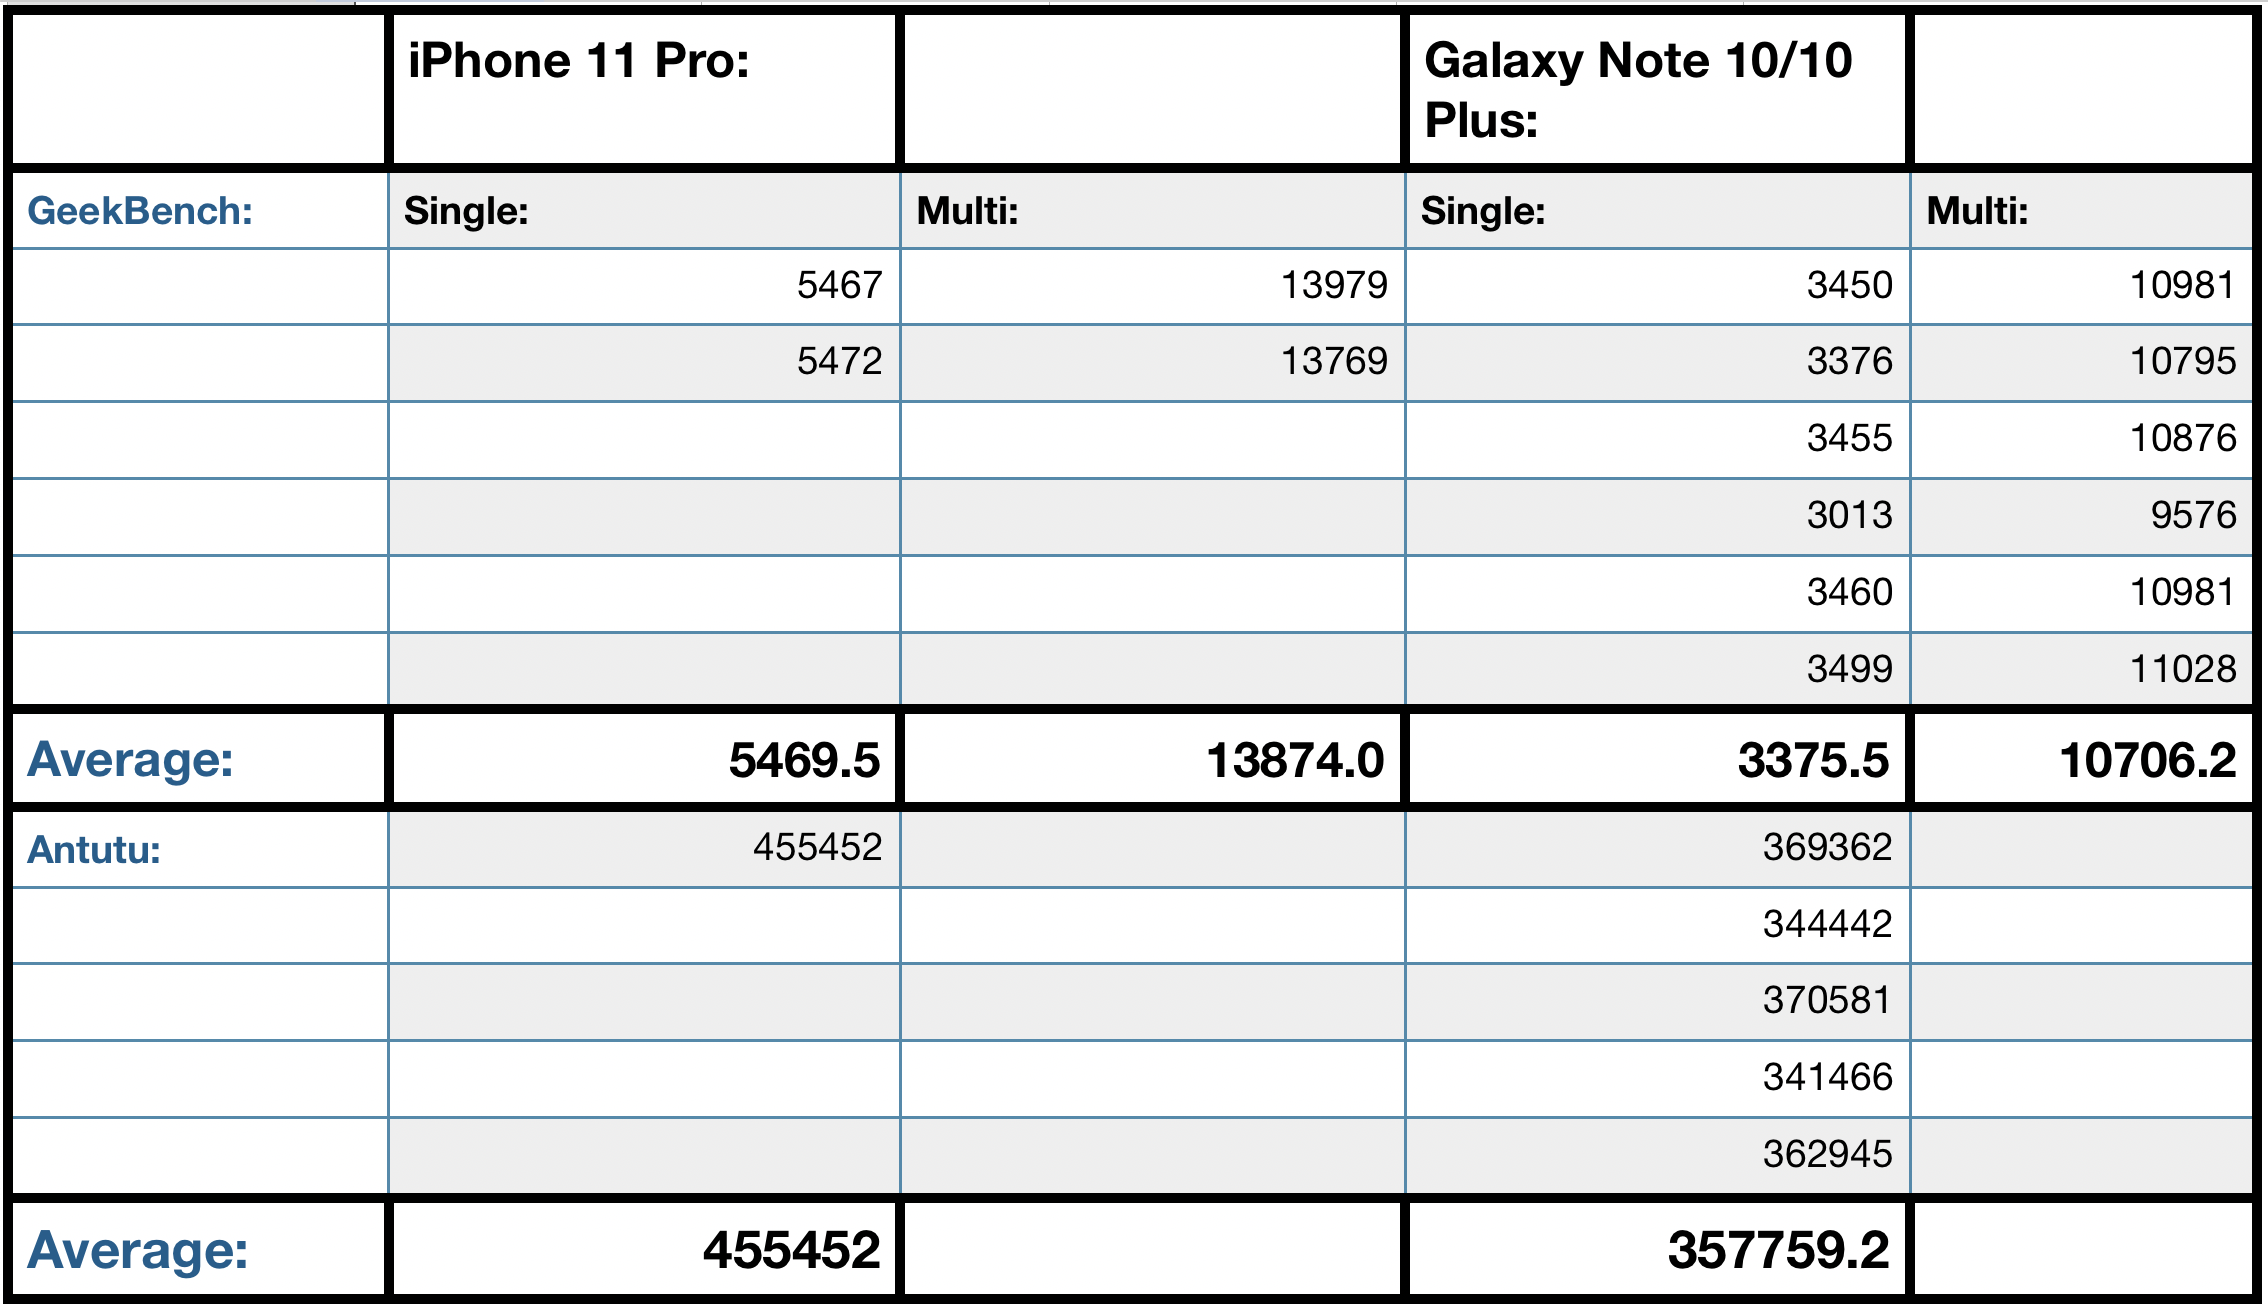 iPhone 11 Pro vs Note 10 Plus